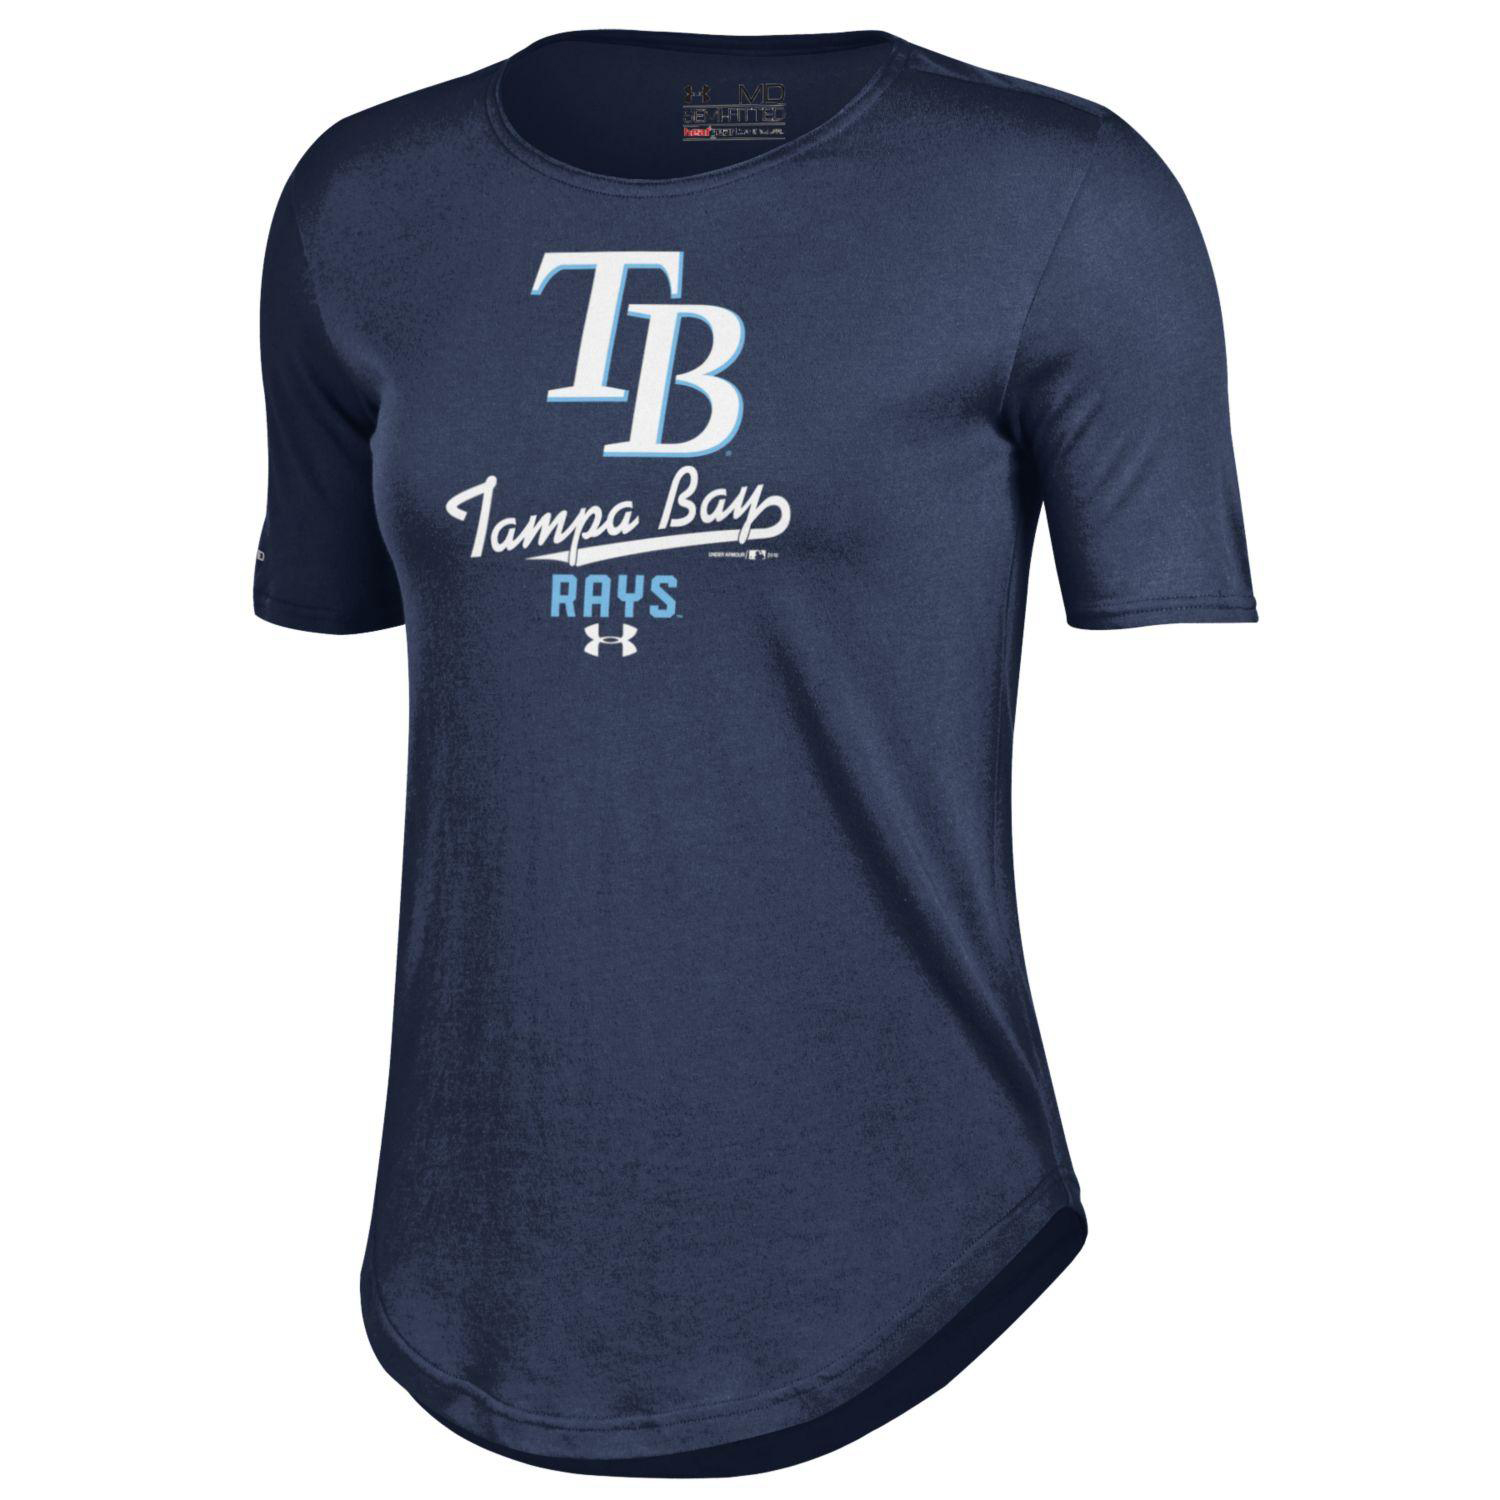 Tampa Bay Rays Under Armour Women's Crew Performance T-Shirt - Navy